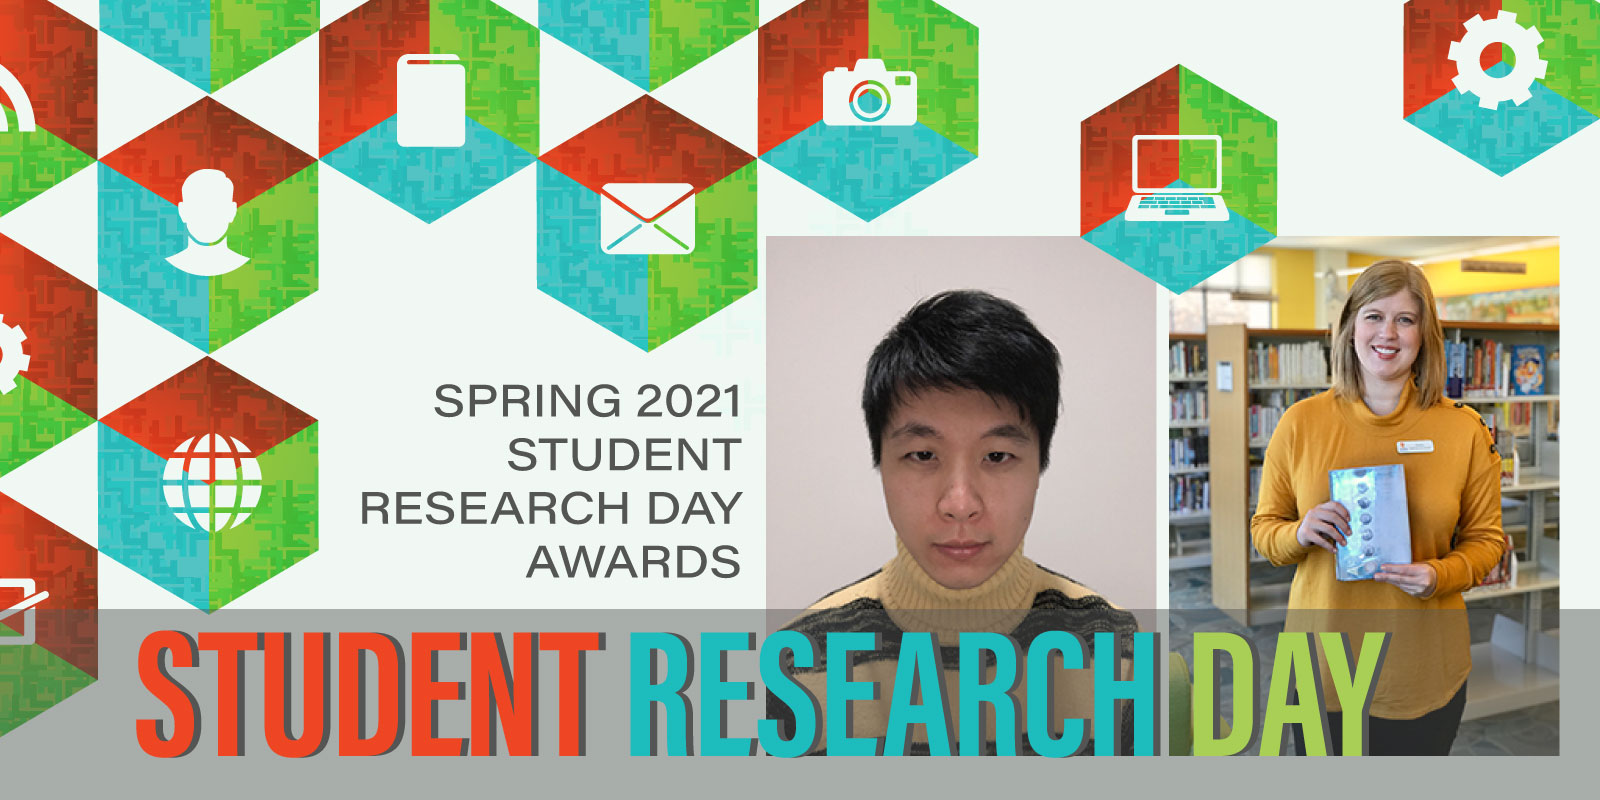 Spring 2021 Student Research Awardees